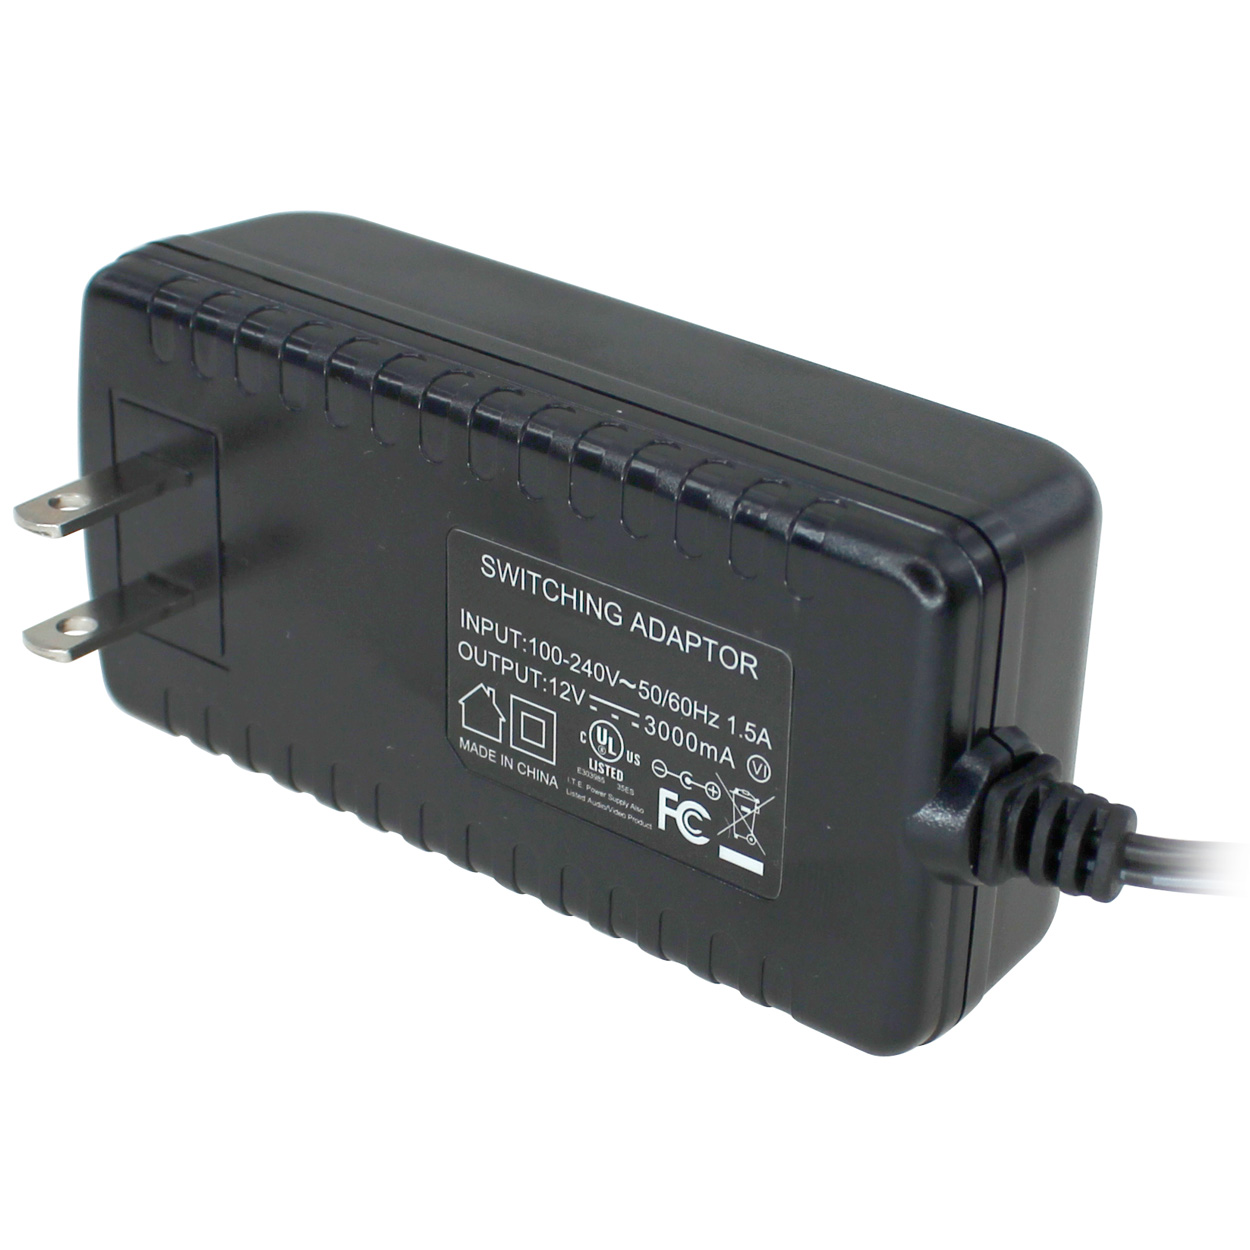 12V DC 3000mA Output Power Adapter (100-240V AC Input, 2.1mm ID / 5.5mm OD)